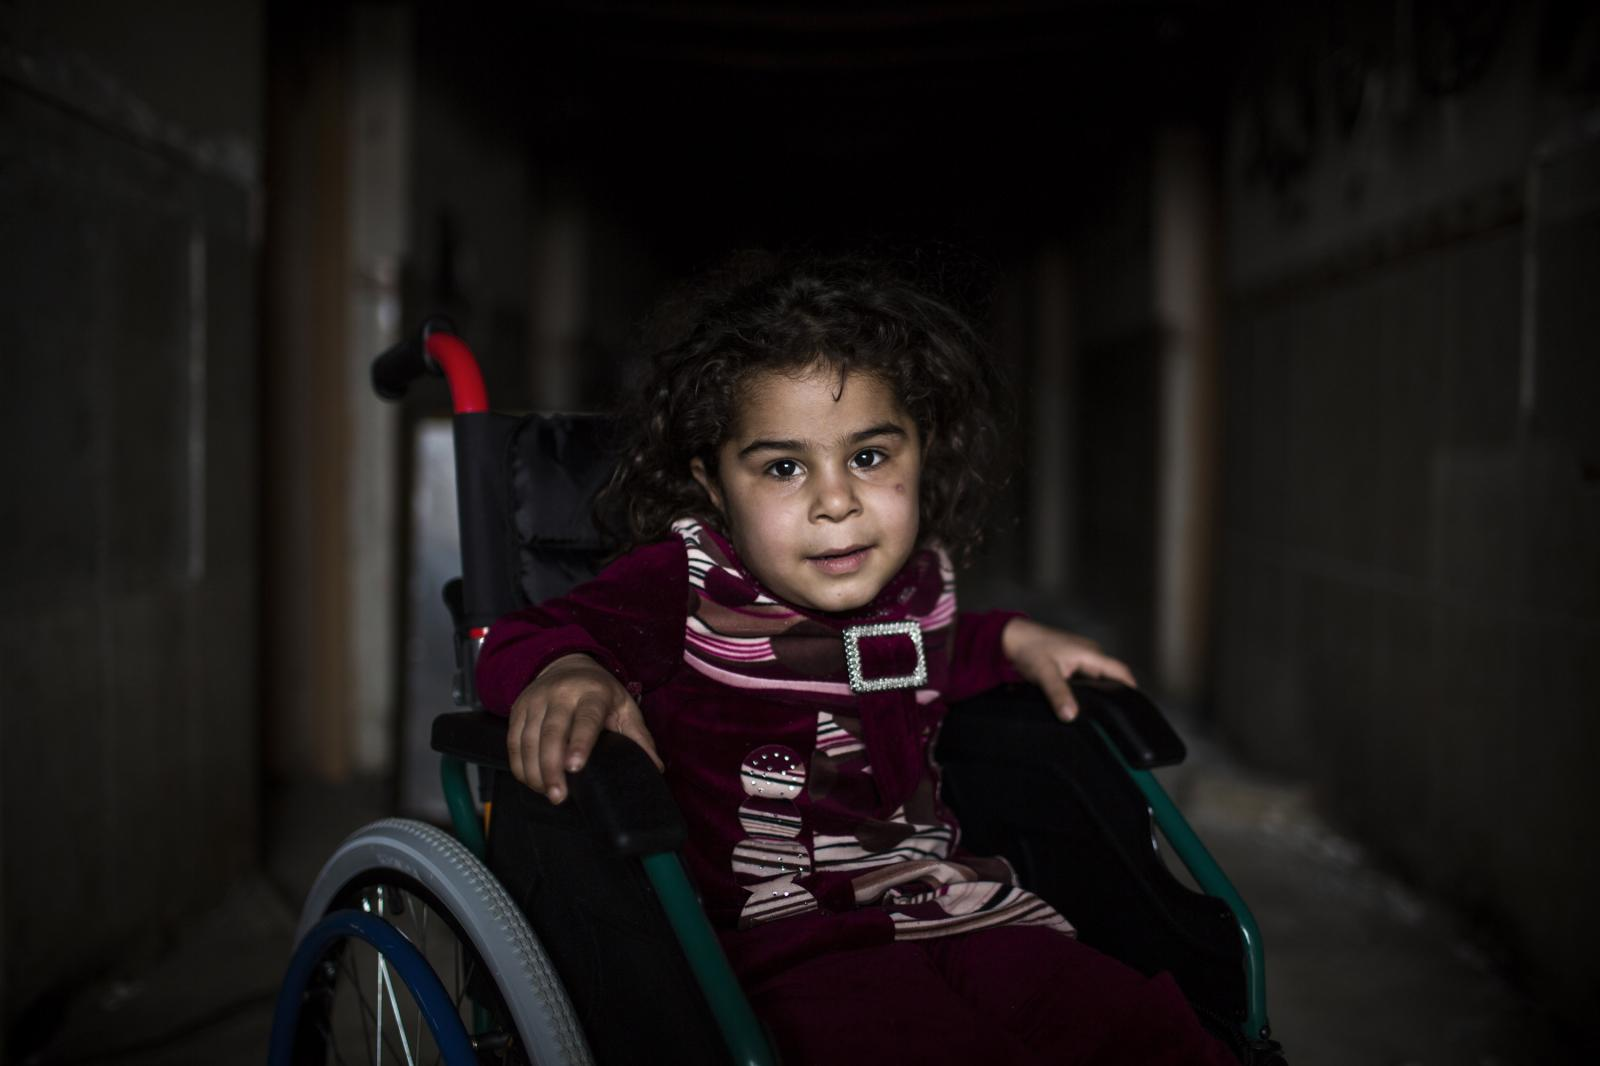 Five-year-old Faten receives care at MSF's Post-Op Hospital south of Mosul, Iraq. She was injured while playing in a garden when a mortar bomb fell nearby and exploded. Hamdaniya, Iraq 2017. Diego Ibarra Sánchez for MSF